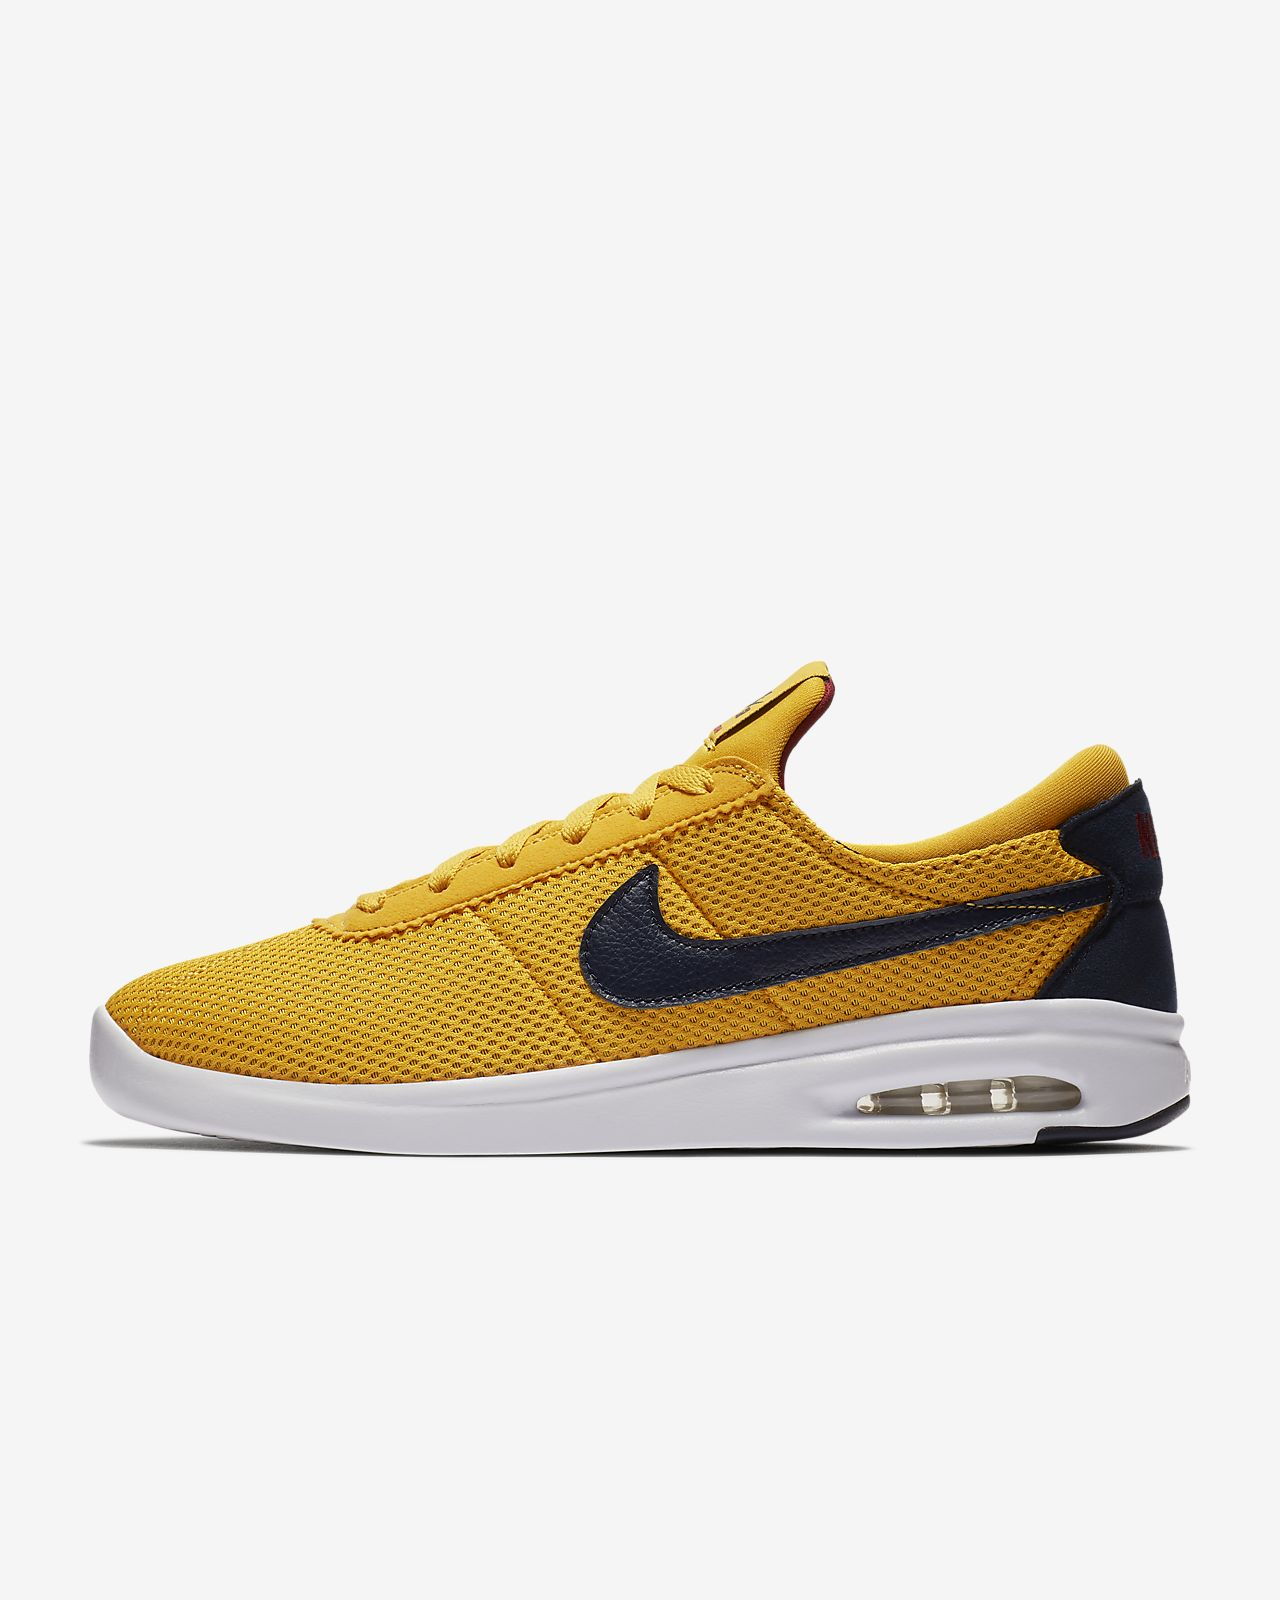 new product 9fe0b c8e35 ... germany nike sb air max bruin vapor mens skateboarding shoe c9107 55b4b